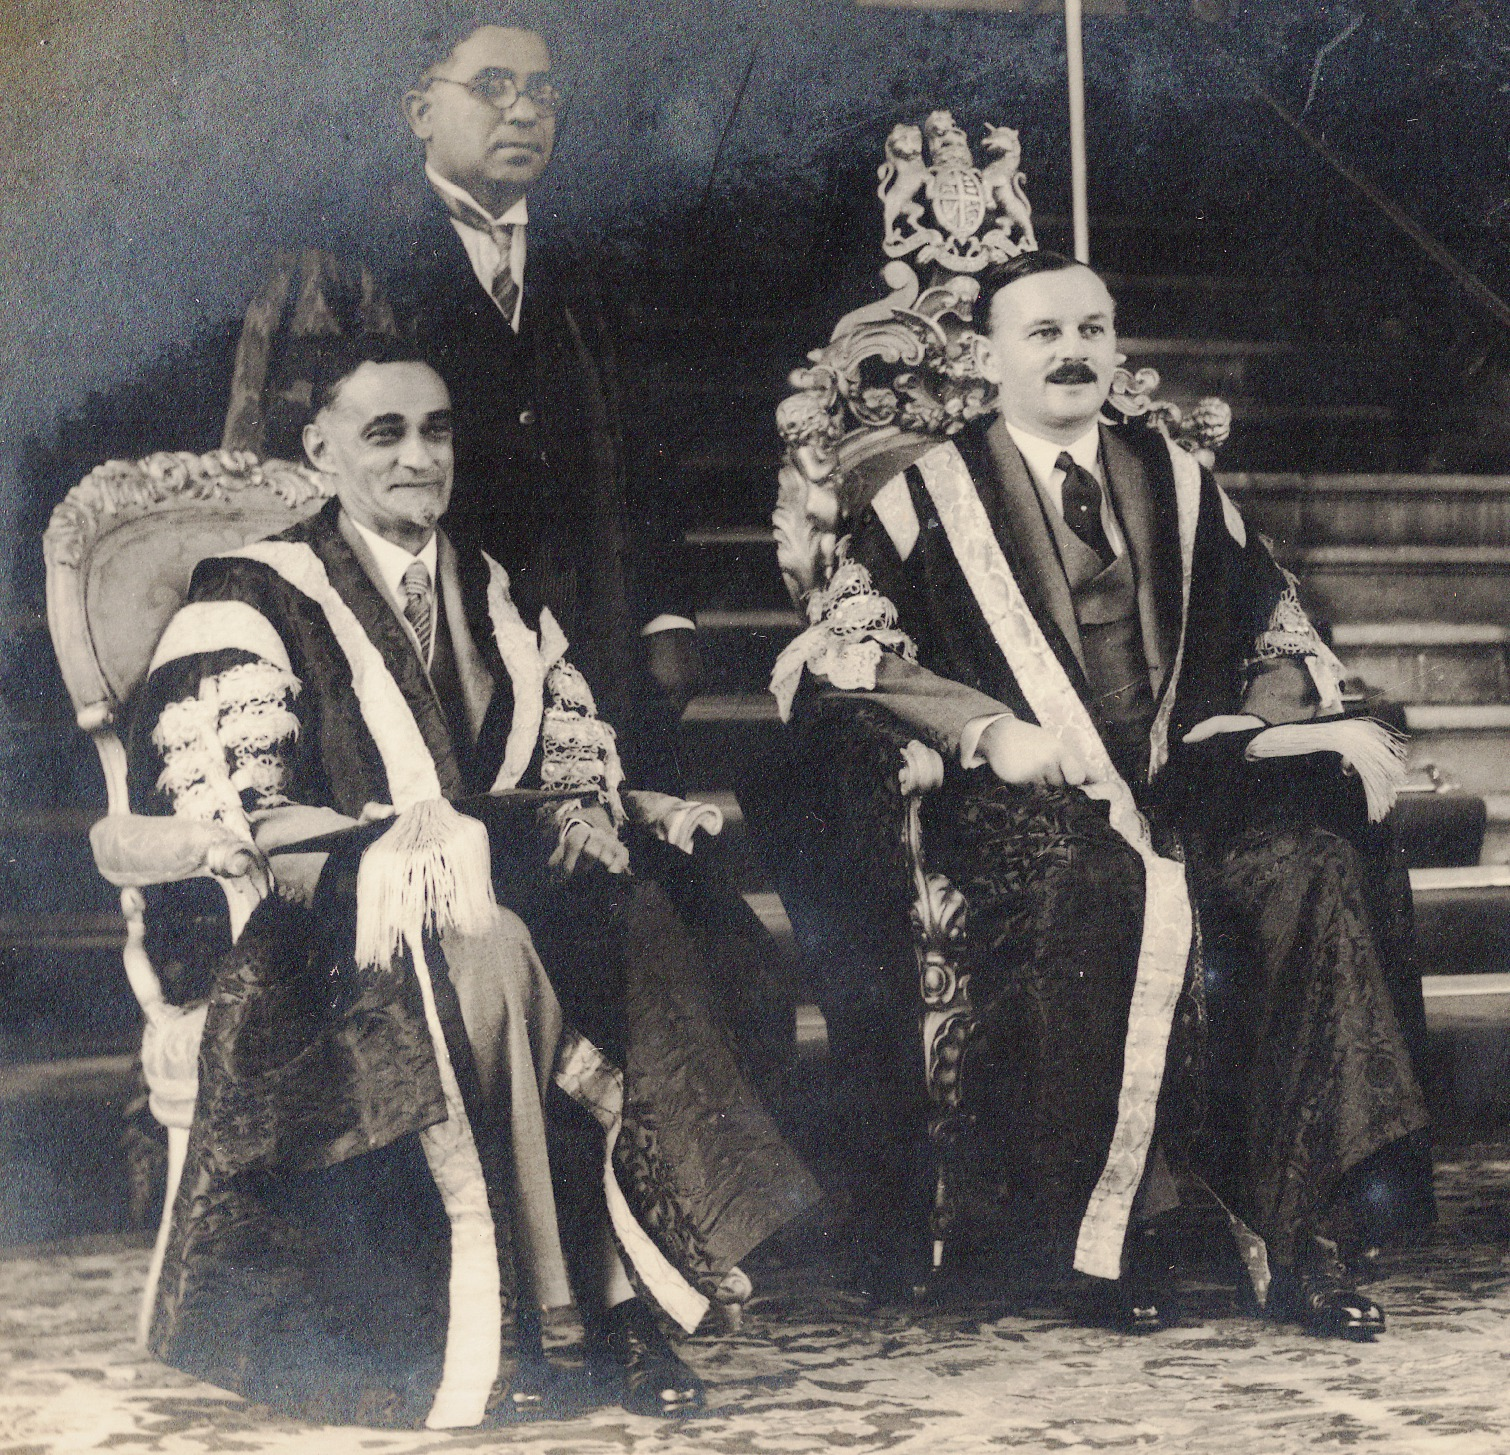 The author's grandfather Sir Rustam Masani, Vice-Chancellor of Bombay University, sitting extreme left/ Credit: Zareer Masani